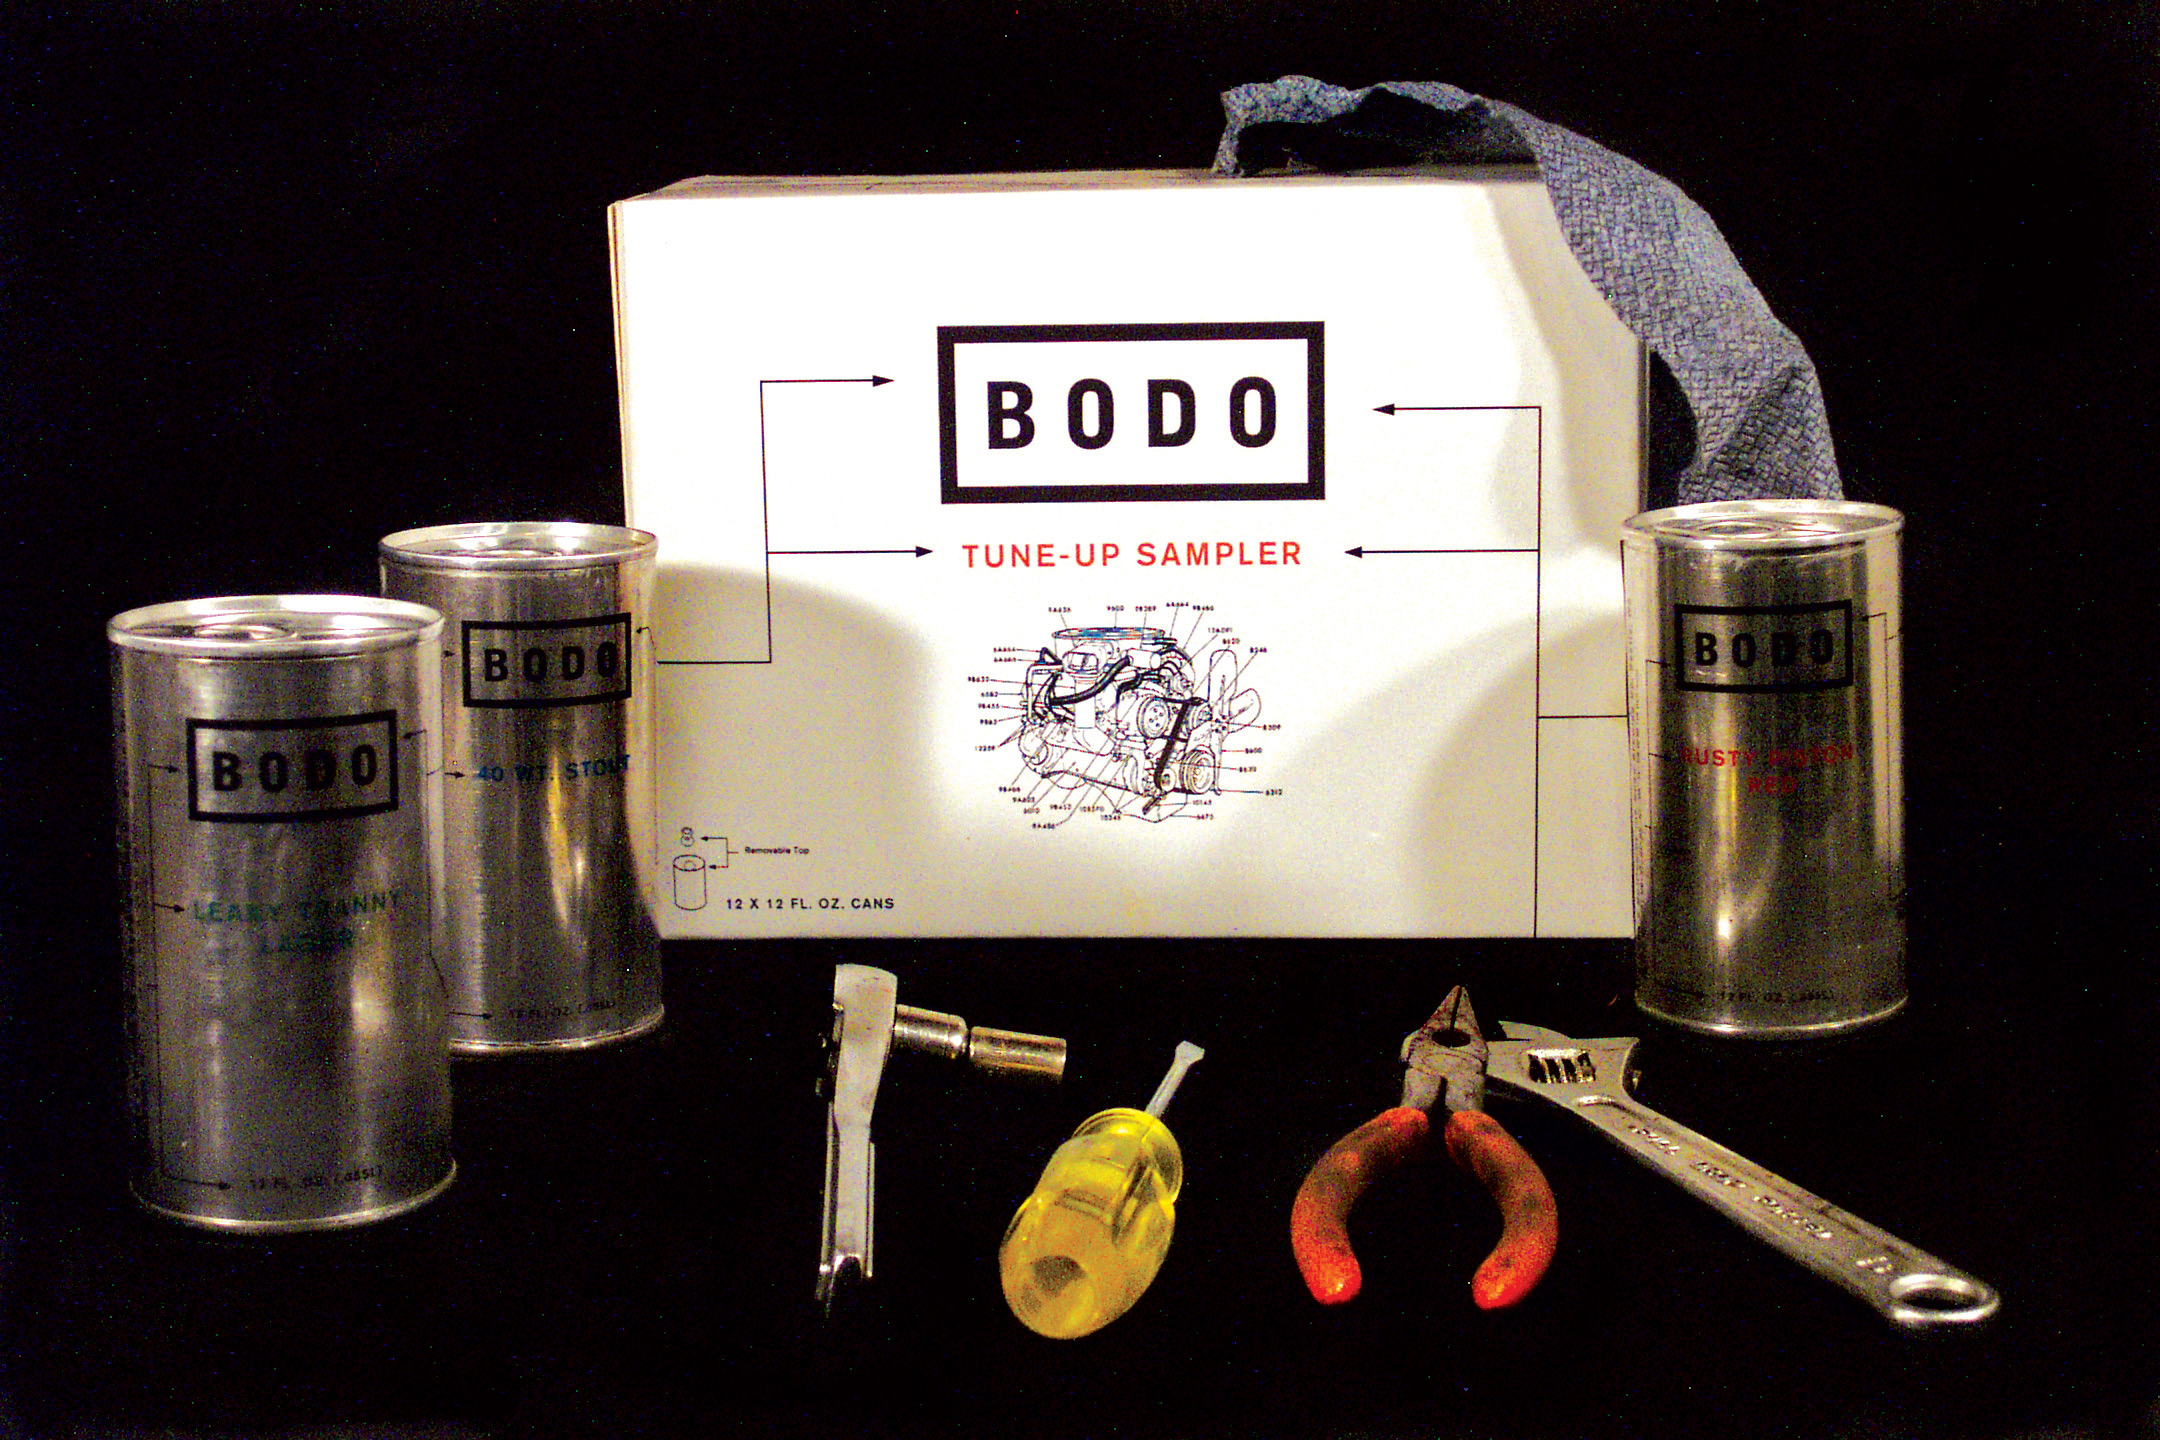 Bodo Beer Packaging box